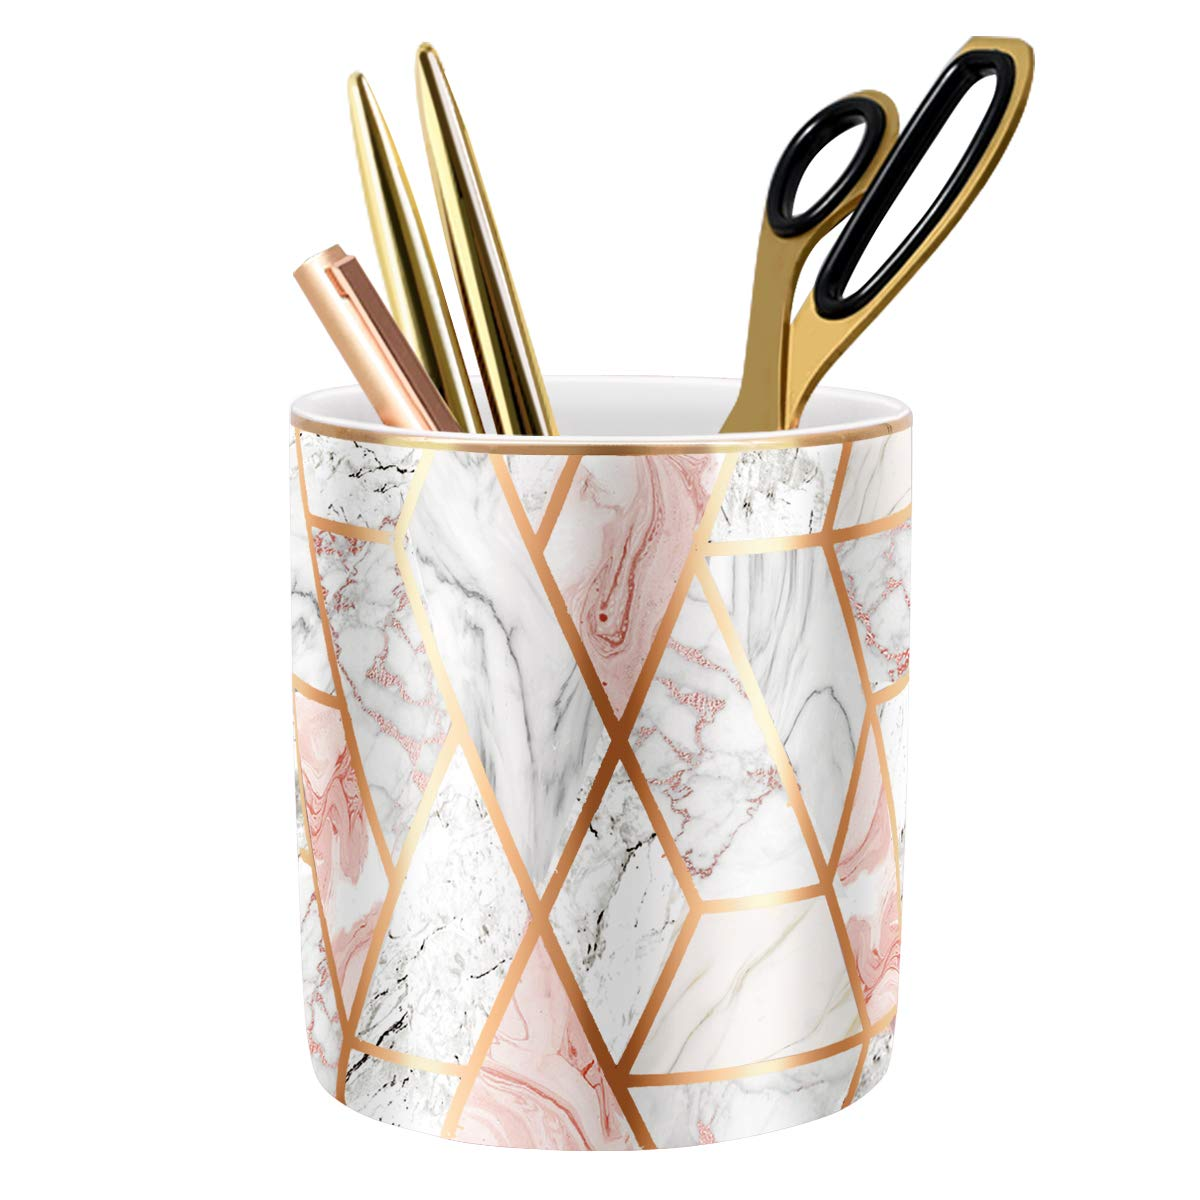 WAVEYU Pen Holder for Desk, Pencil Cup for Desk, Durable Ceramic Desk Organizer Makeup Brush Holder Golden Marble Design Pencil Holder Ideal Gift for Office, Classroom, Marble